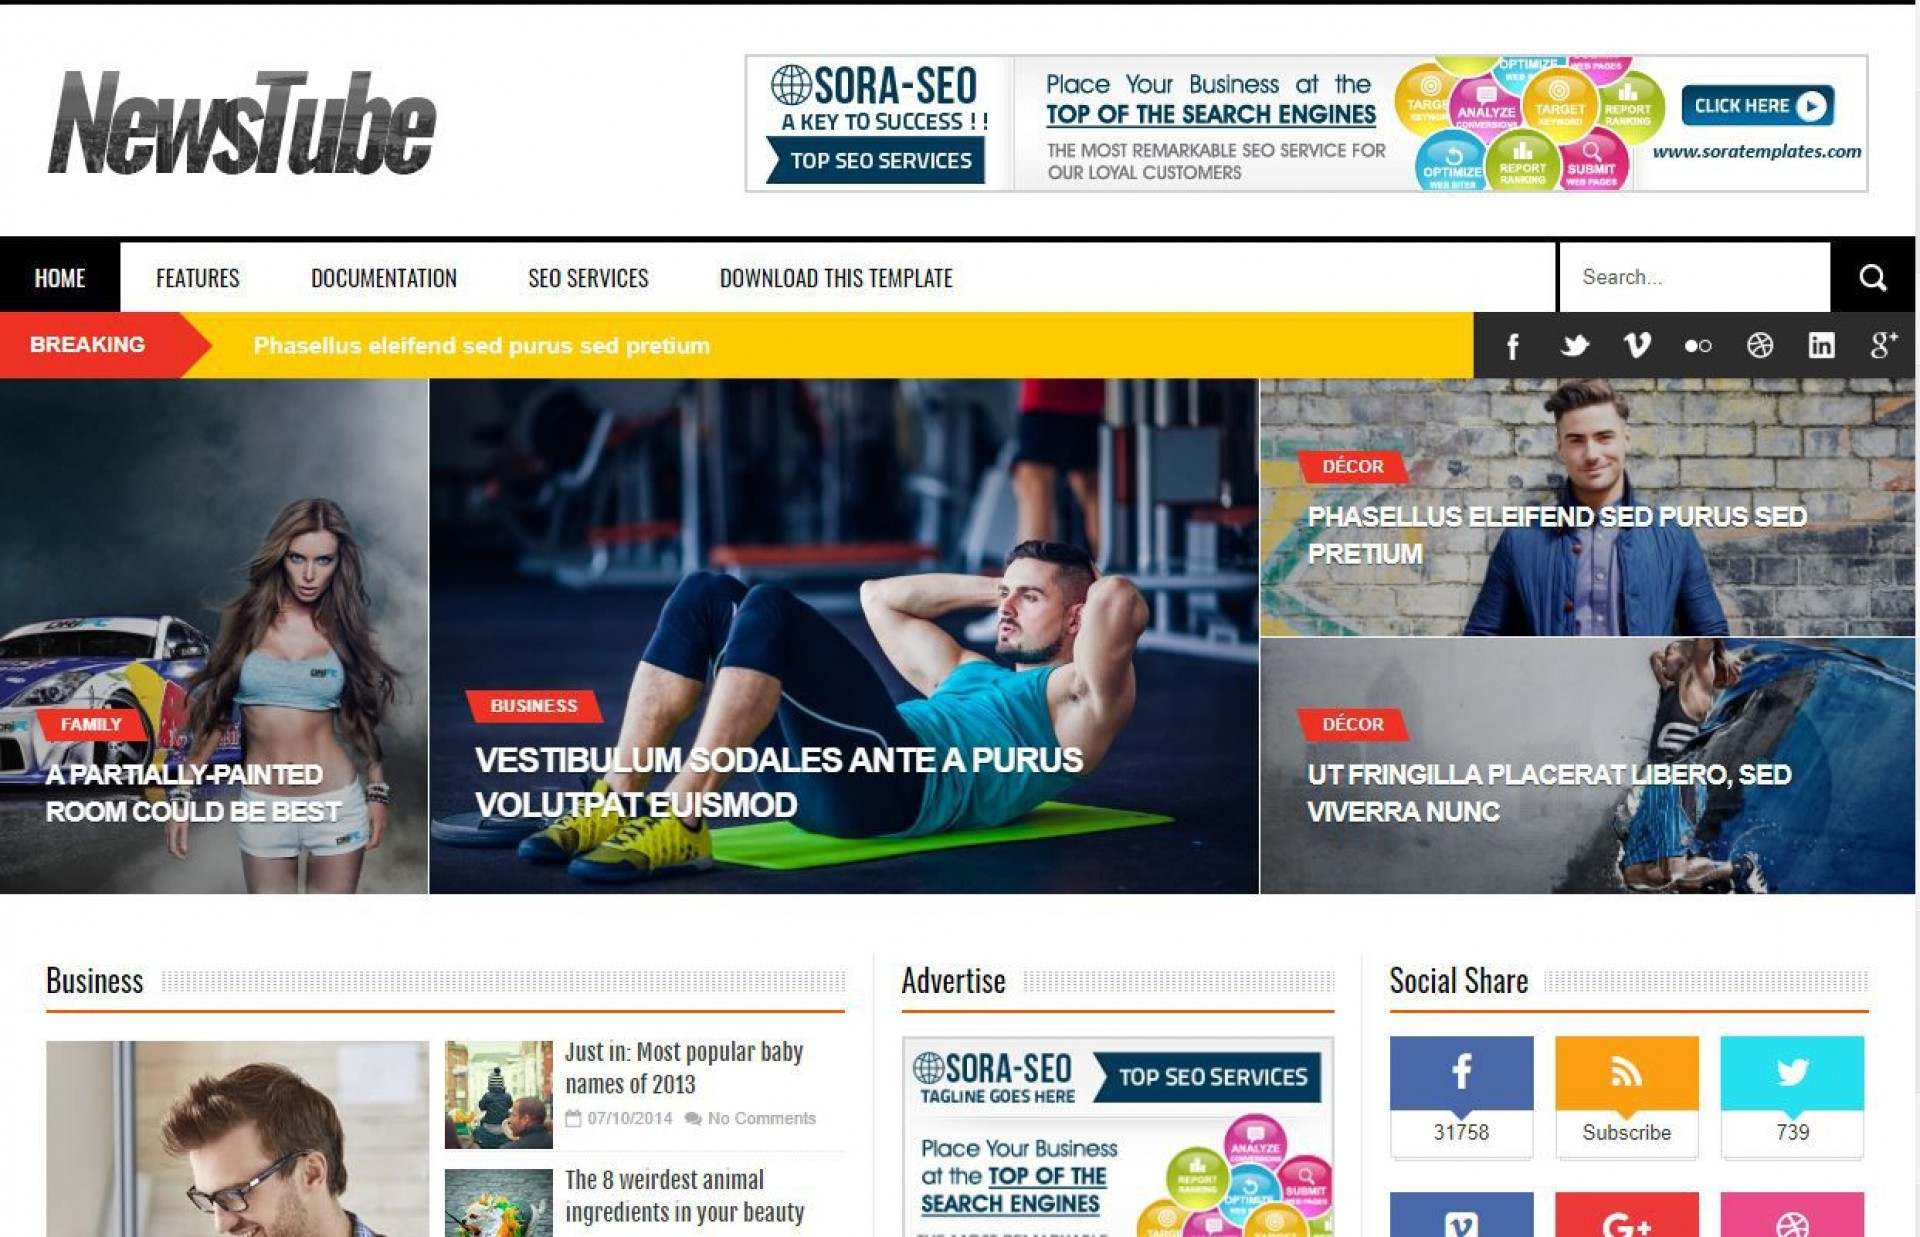 006 Excellent Best Free Responsive Blogger Template Image  Templates Mobile Friendly Top 20191920